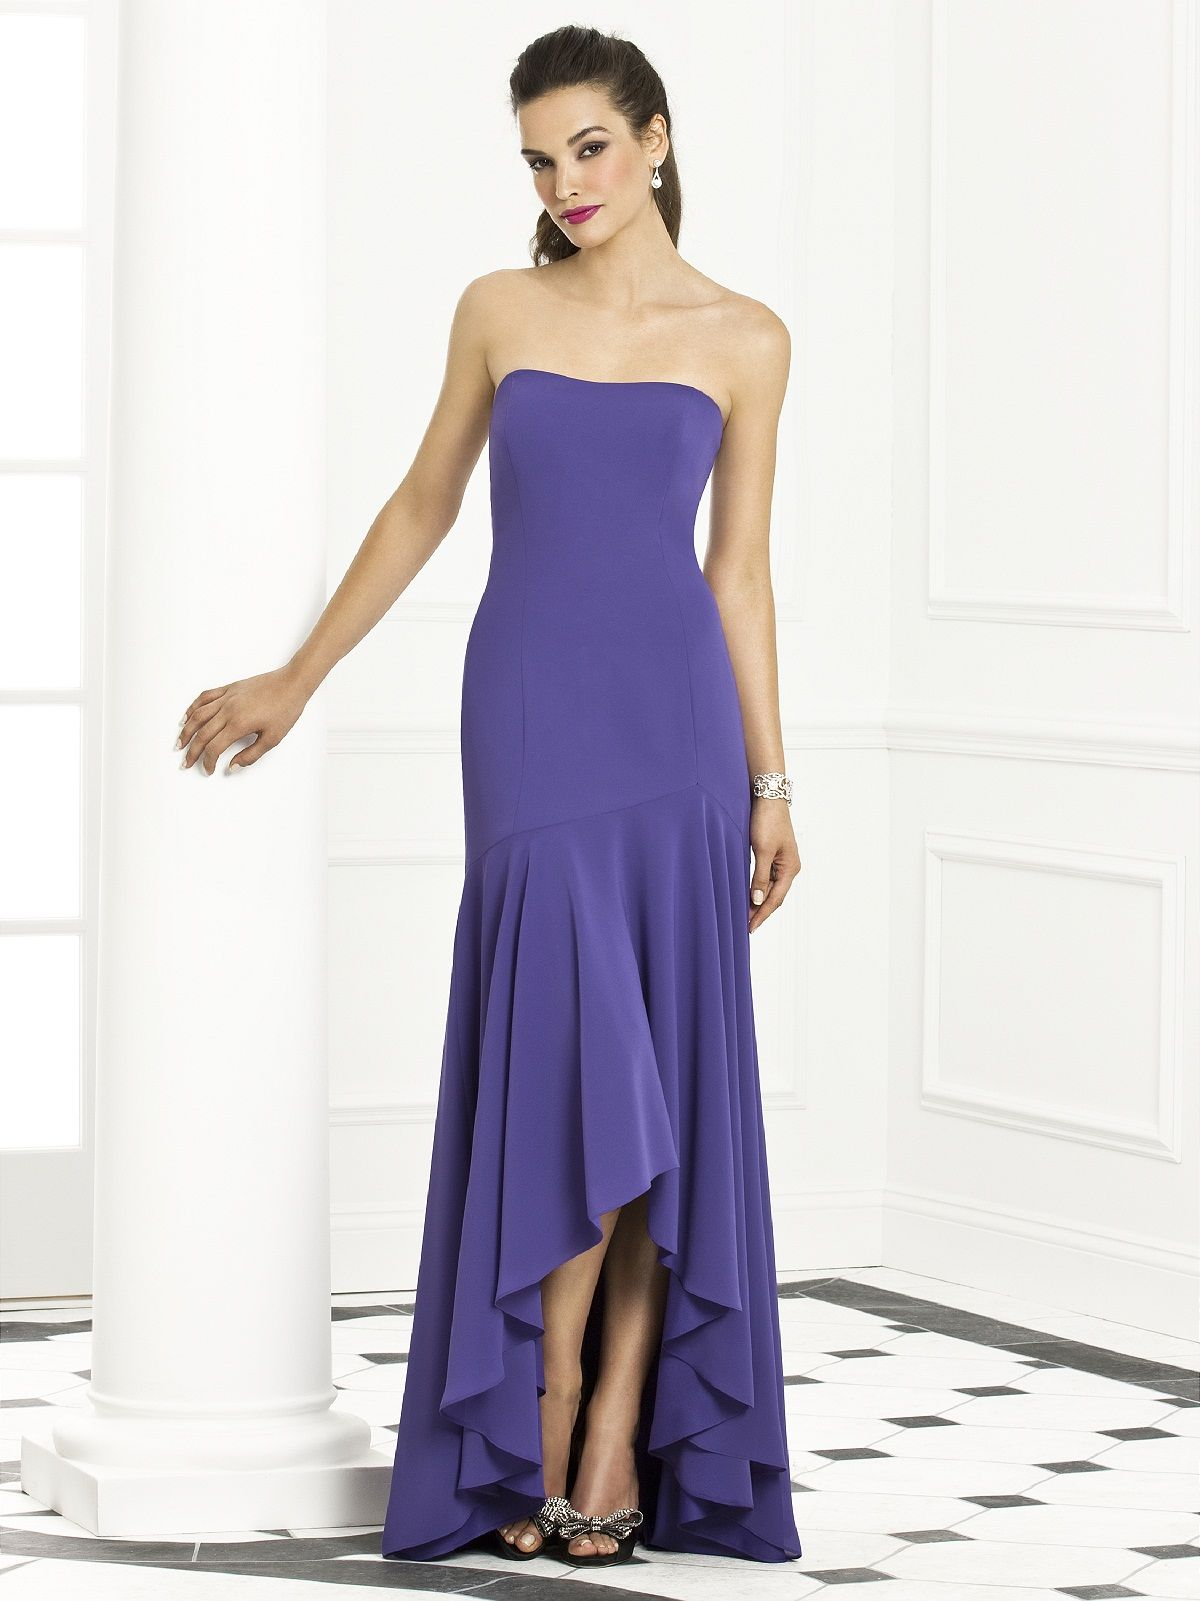 After six bridesmaids style 6659 blue bridesmaid dresses blue after six offers elegant and contemporary bridesmaid styles each dress is designed to provide affordable options for you without sacrificing style ombrellifo Choice Image